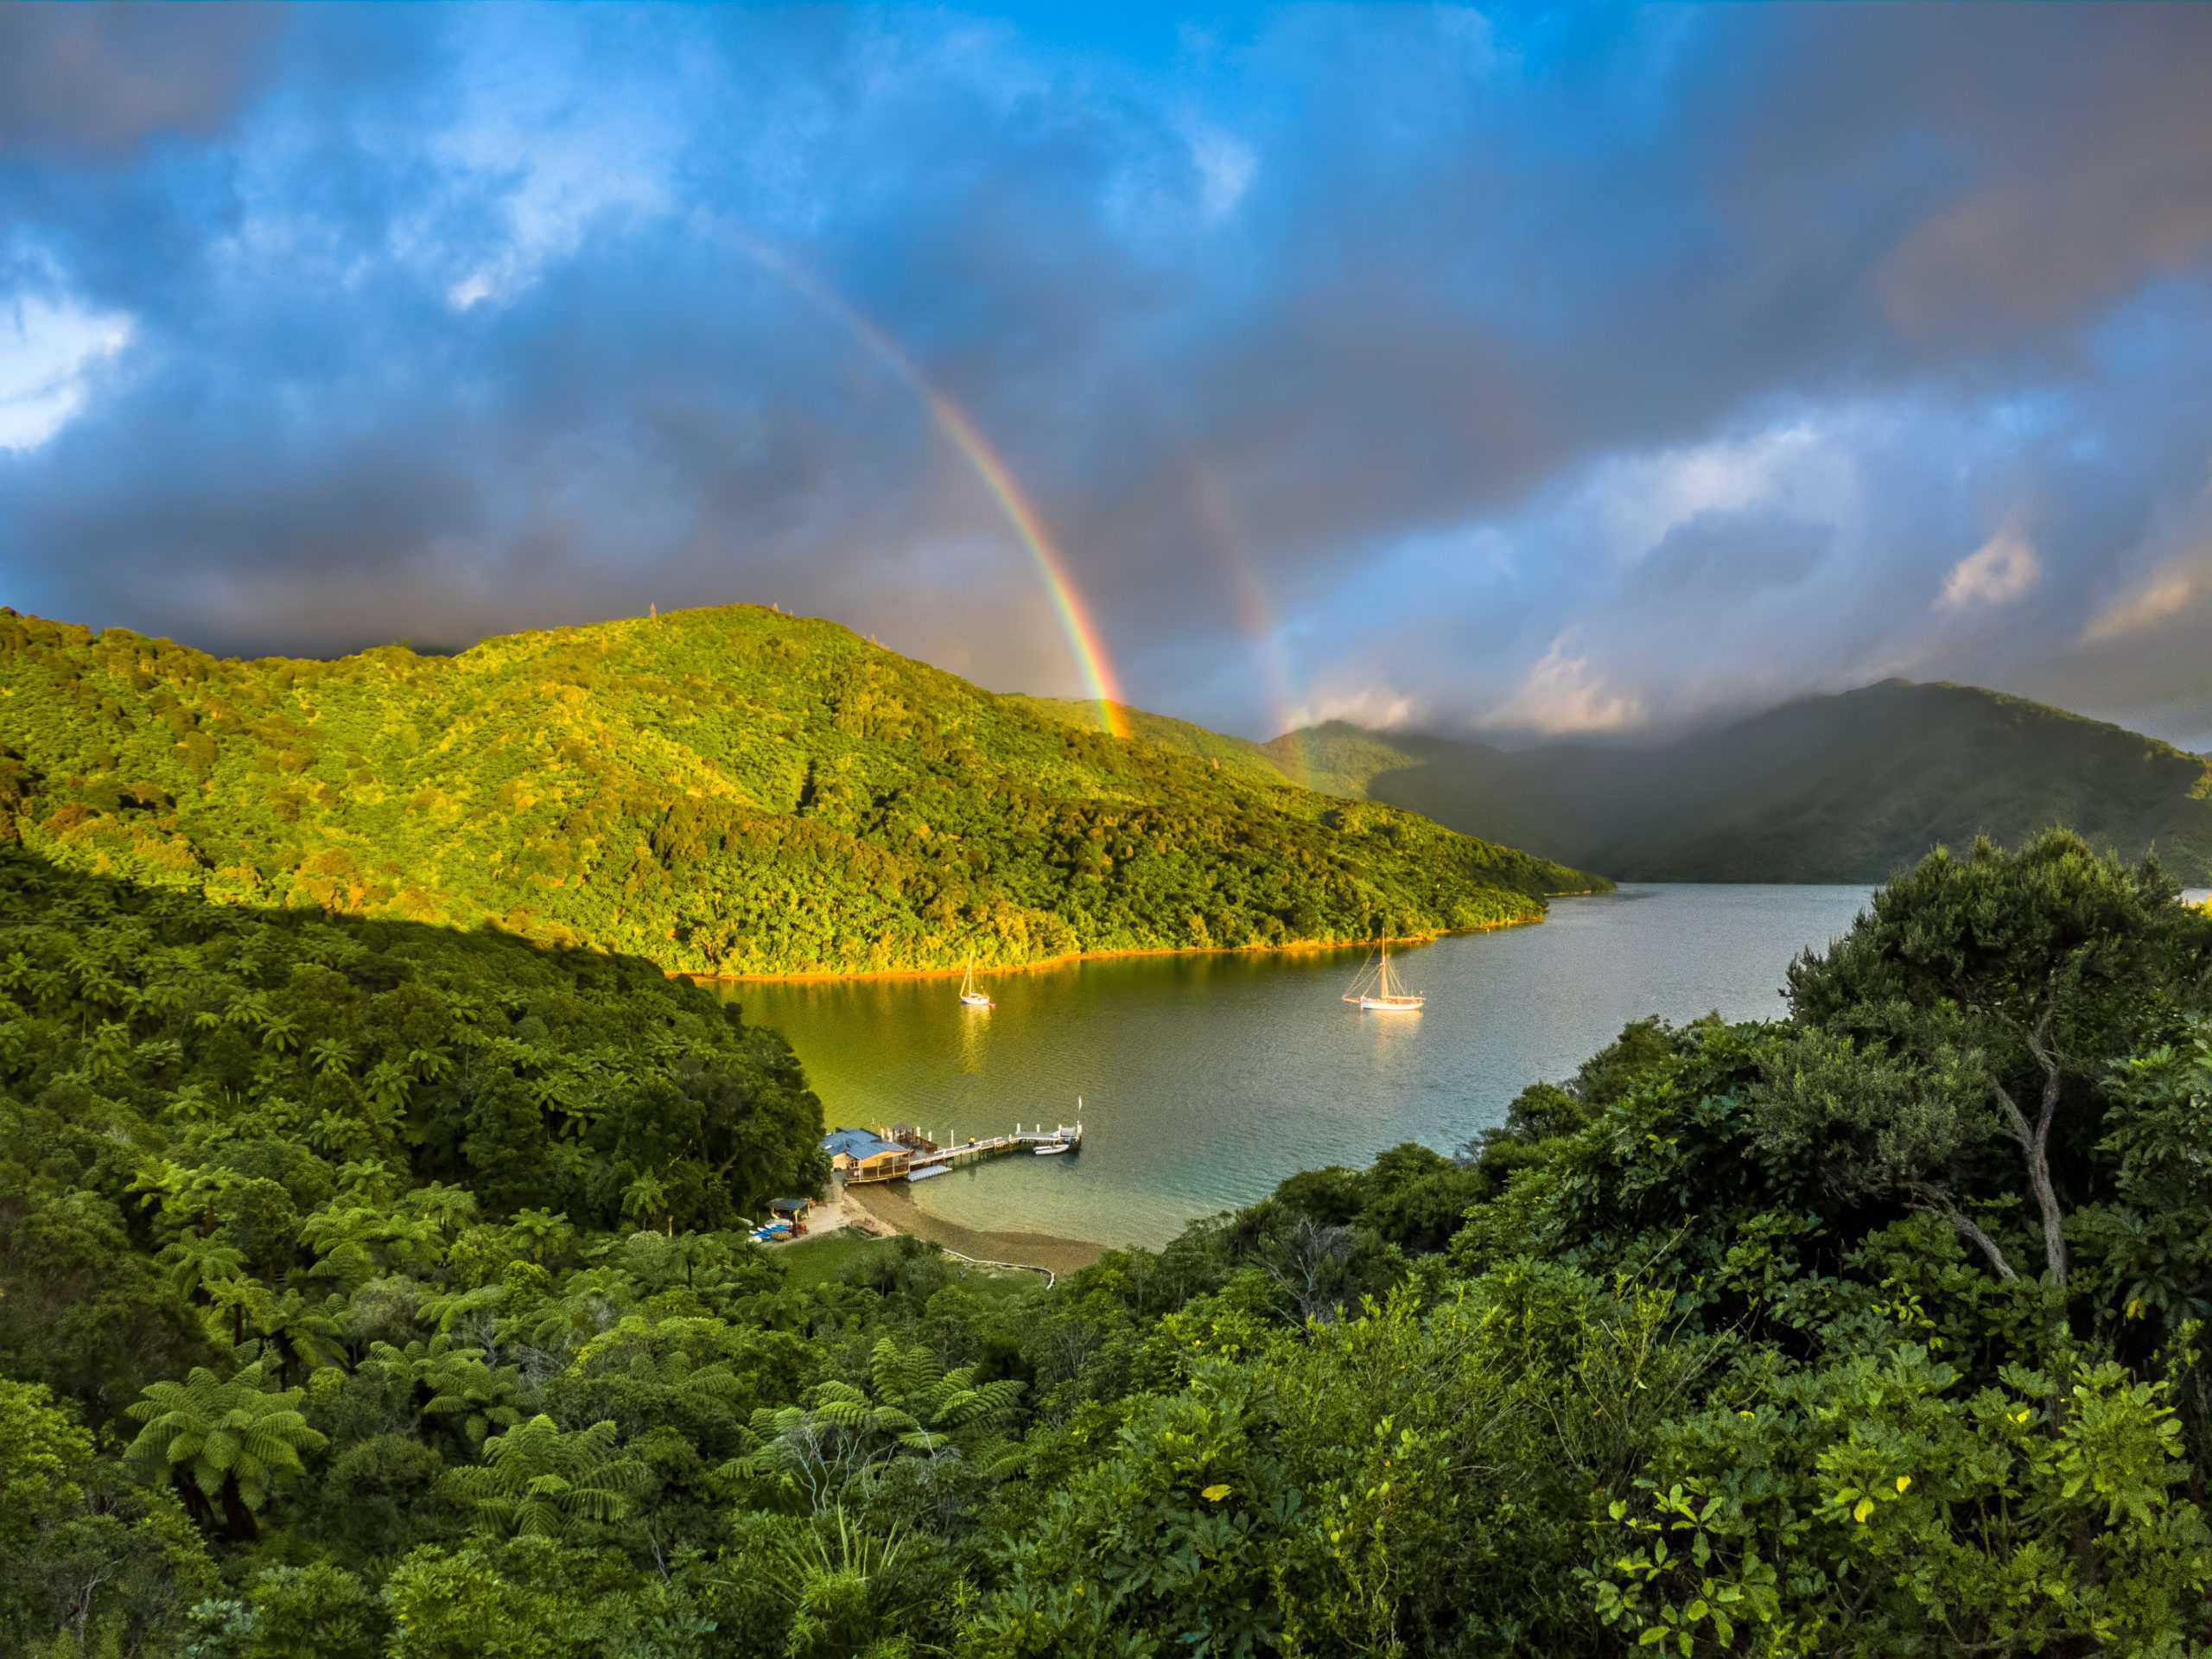 A rainbow over the mountains and sea in Marlborough Sounds.